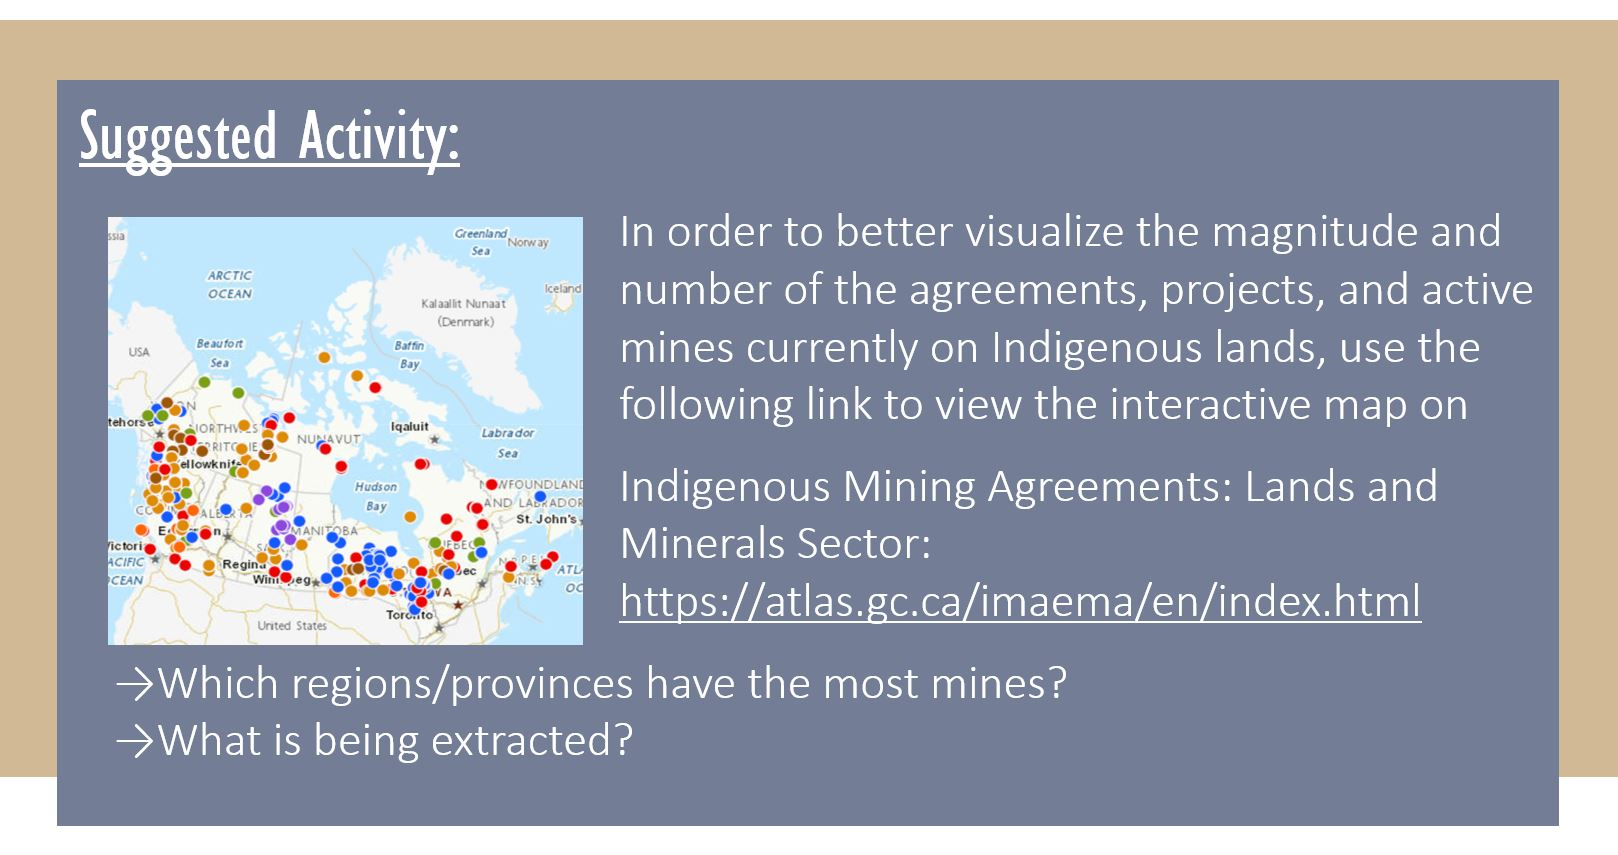 Suggested Activity: In order to better visualize the magnitude and number of the agreements, projects, and active mines currently on Indigenous lands, use the following link to view the interactive map on Indigenous Mining Agreements: Lands and Minerals Sector: https://atlas.gc.ca/imaema/en/index.html Which regions/provinces have the most mines? What is being extracted?